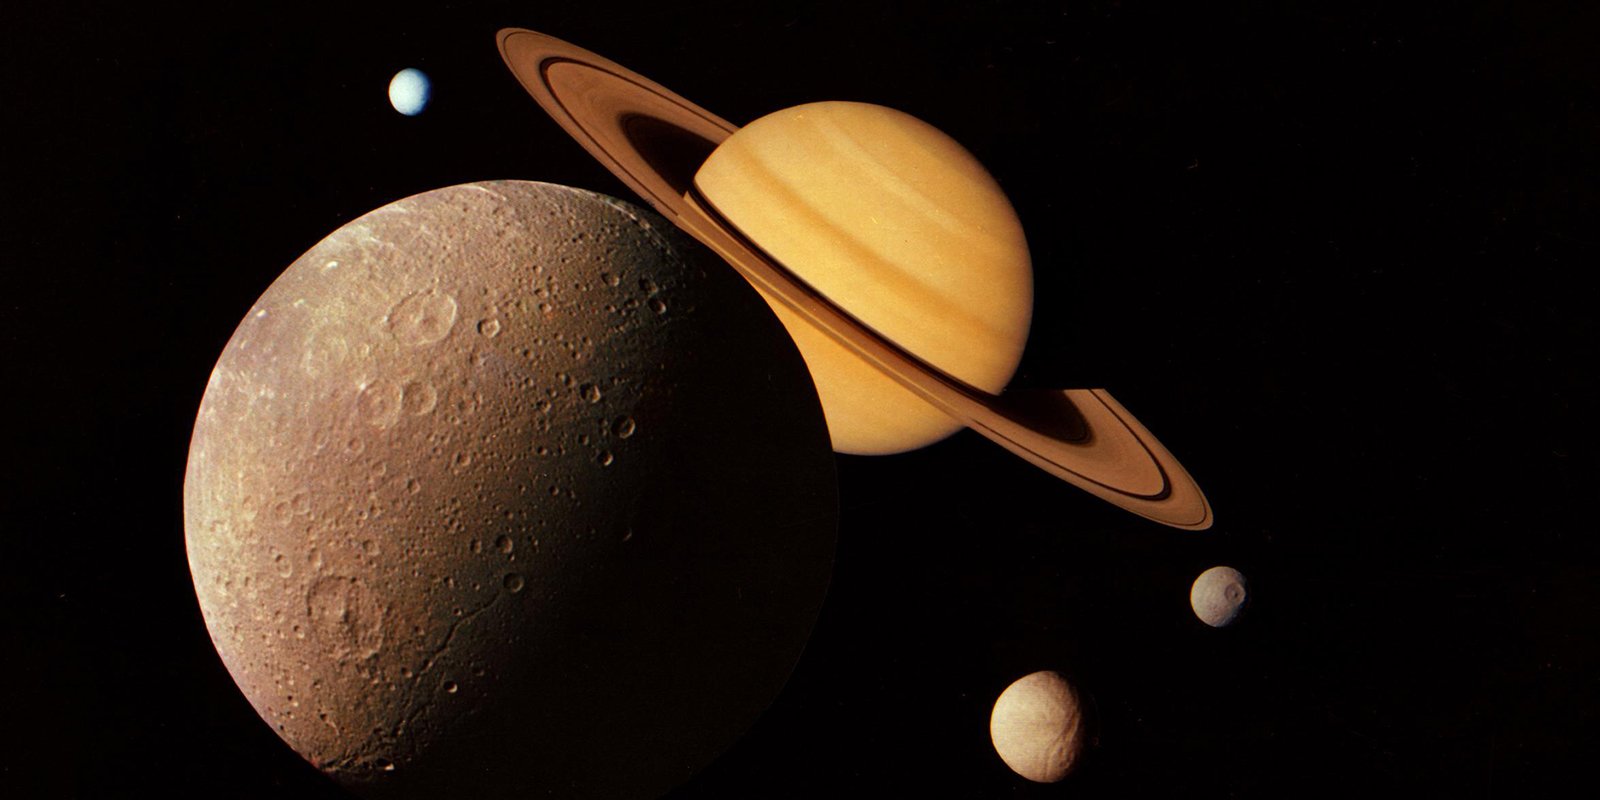 Image of Saturn and system